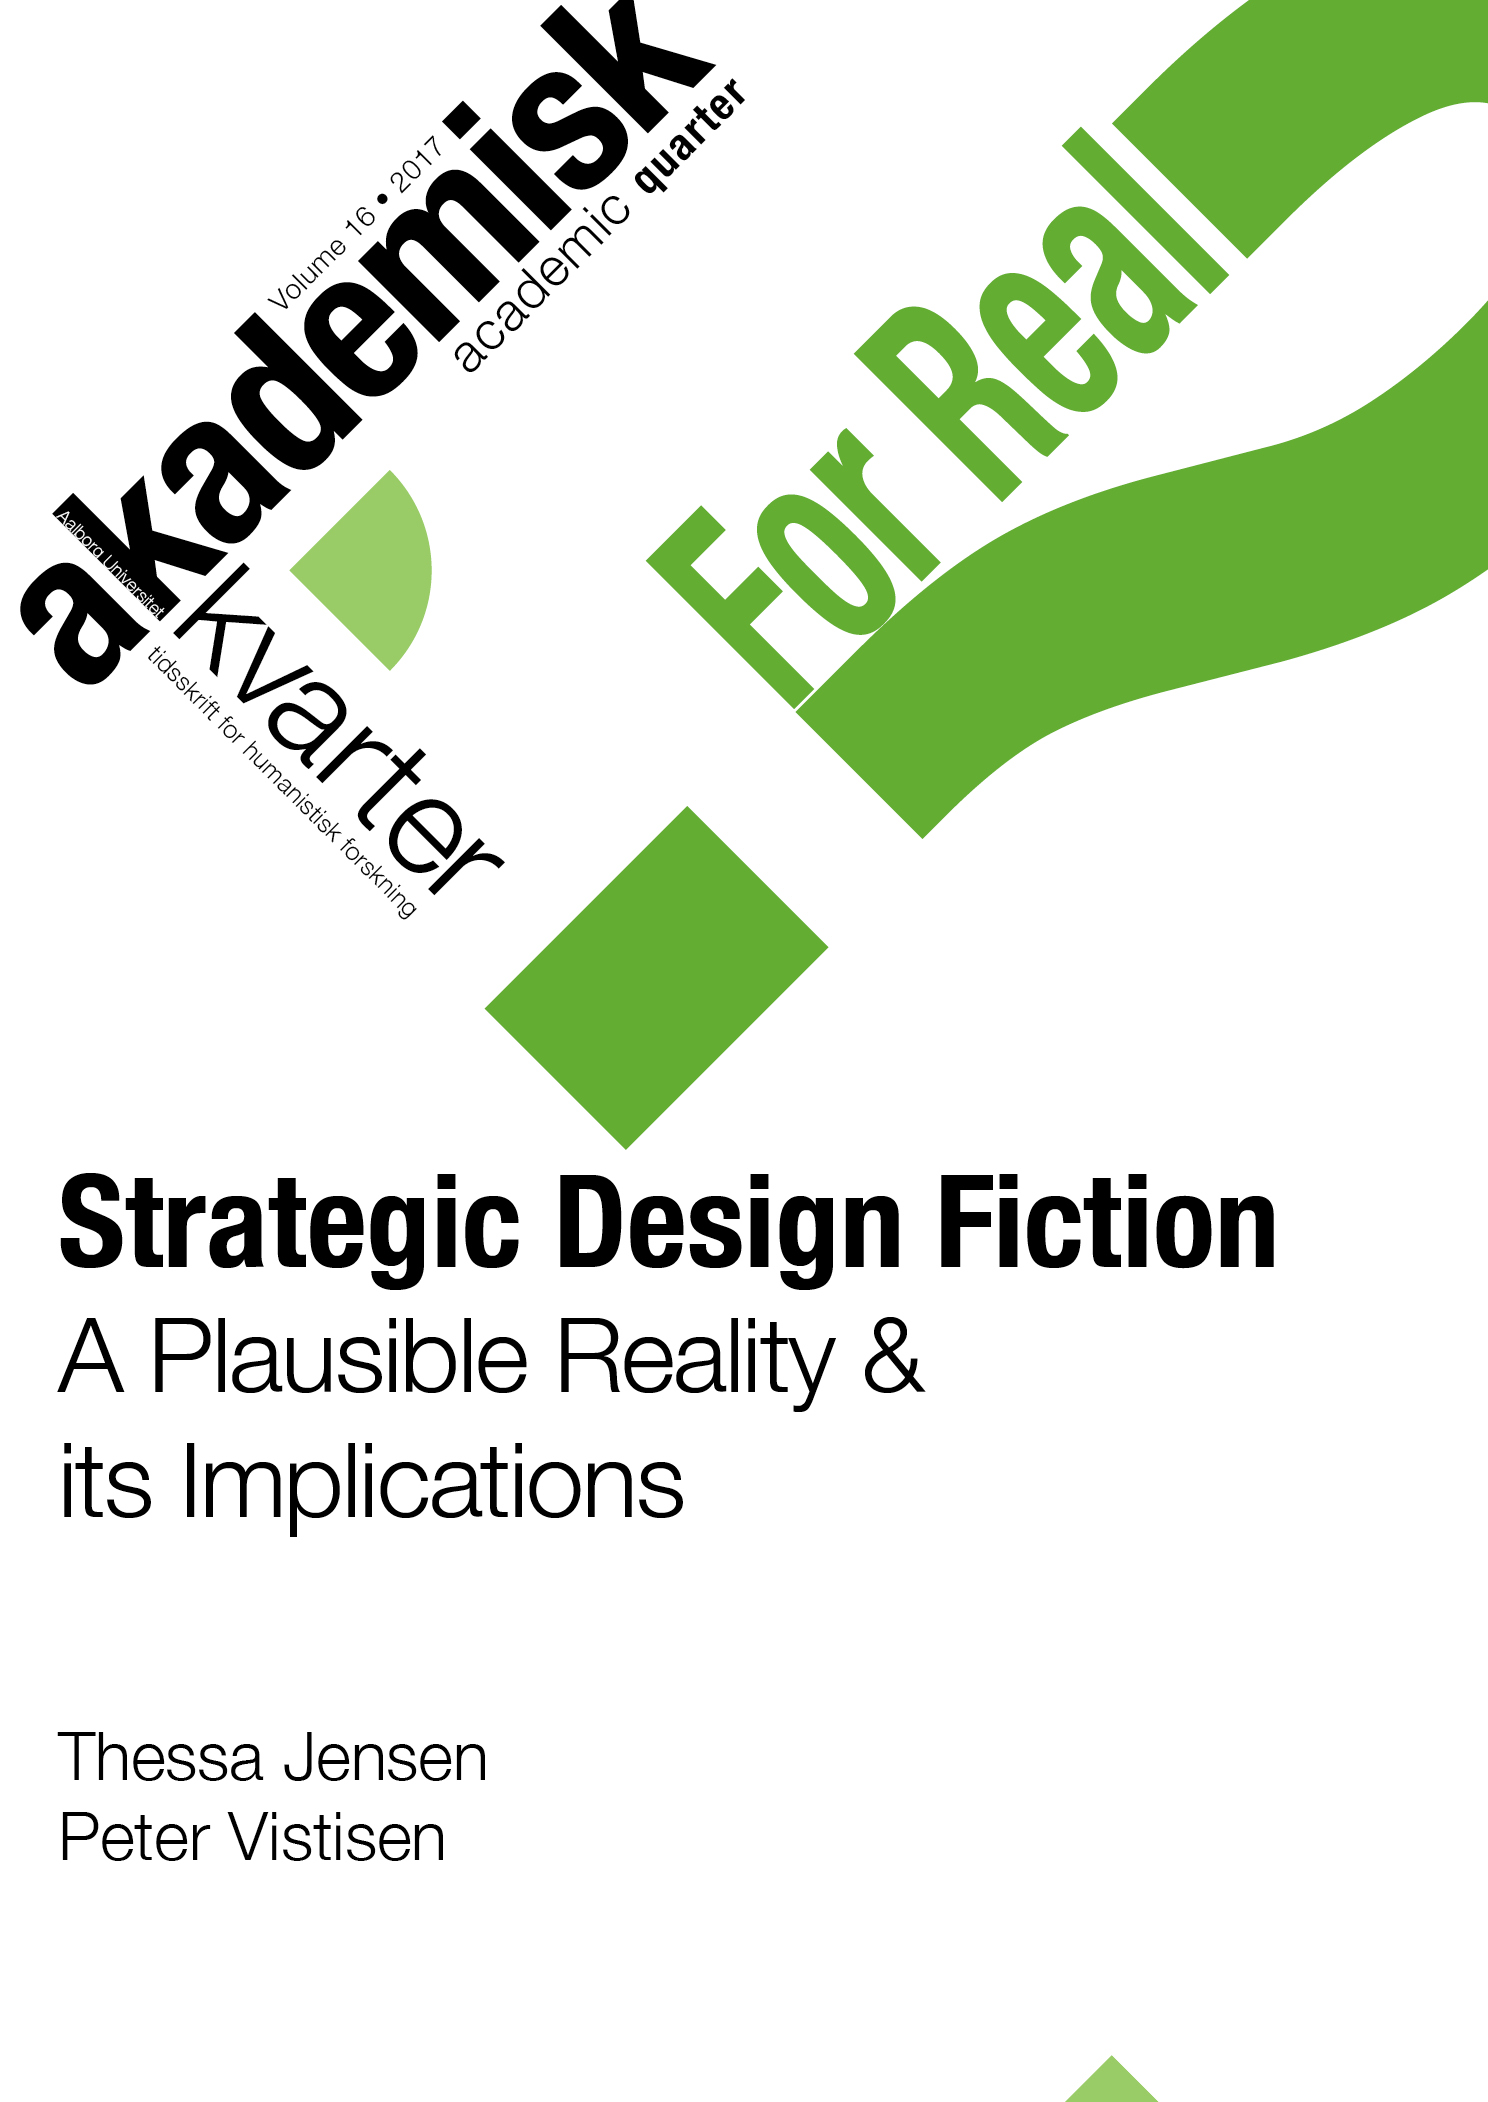 Strategic Design Fiction